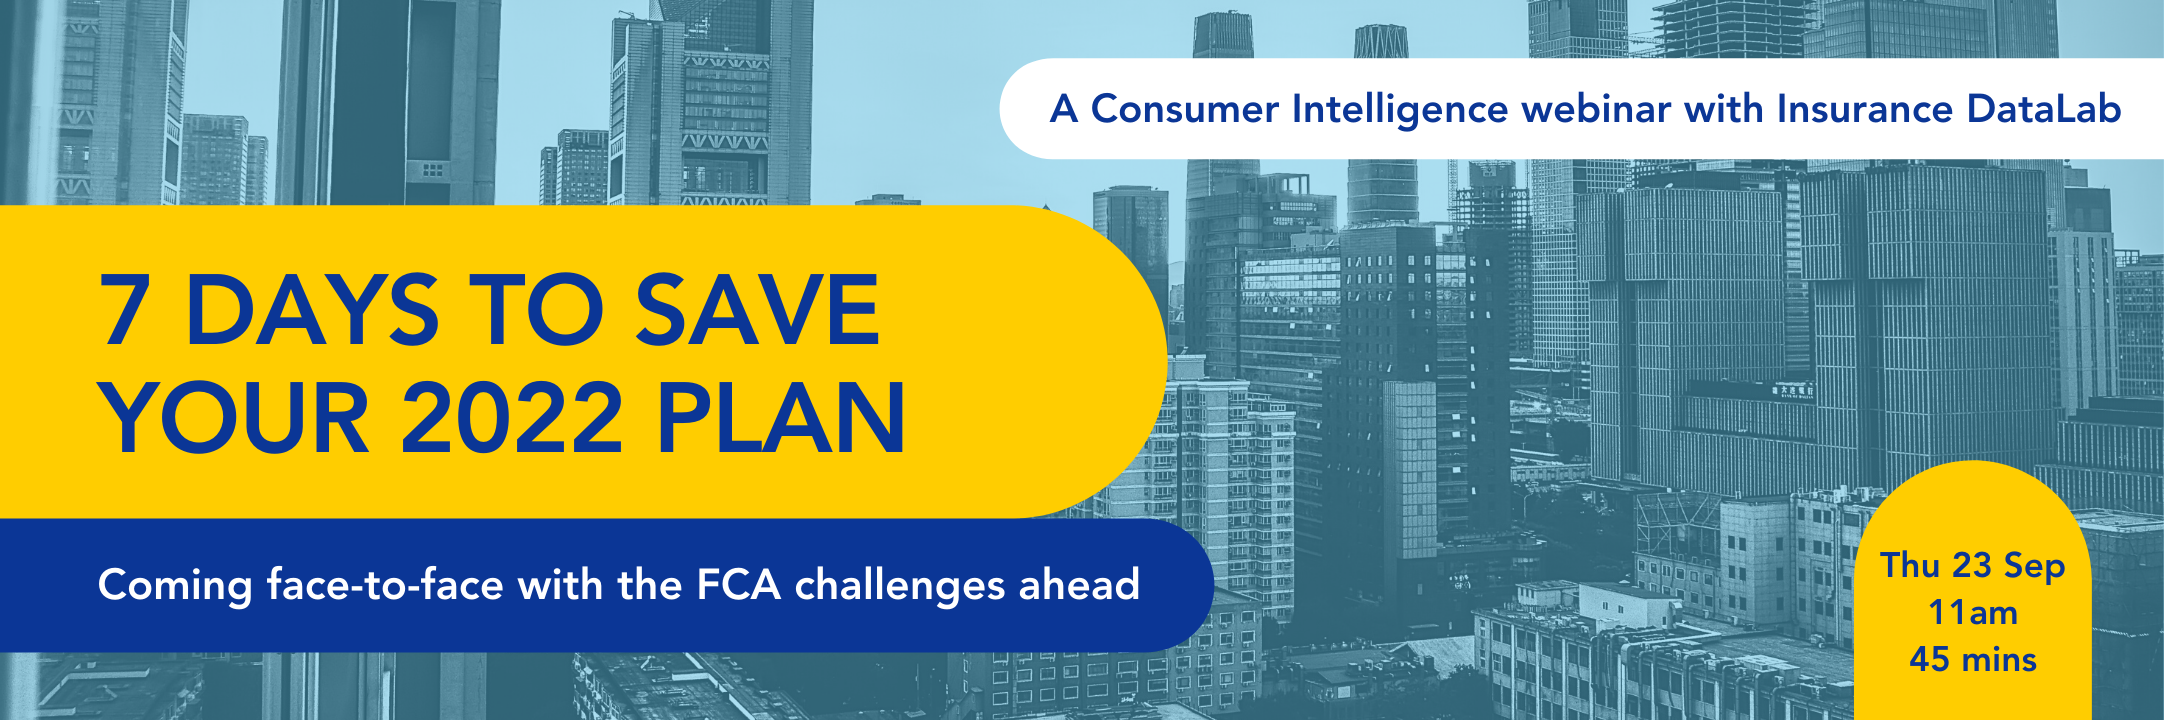 Larger Copy of 7 days to save your 2022 plan